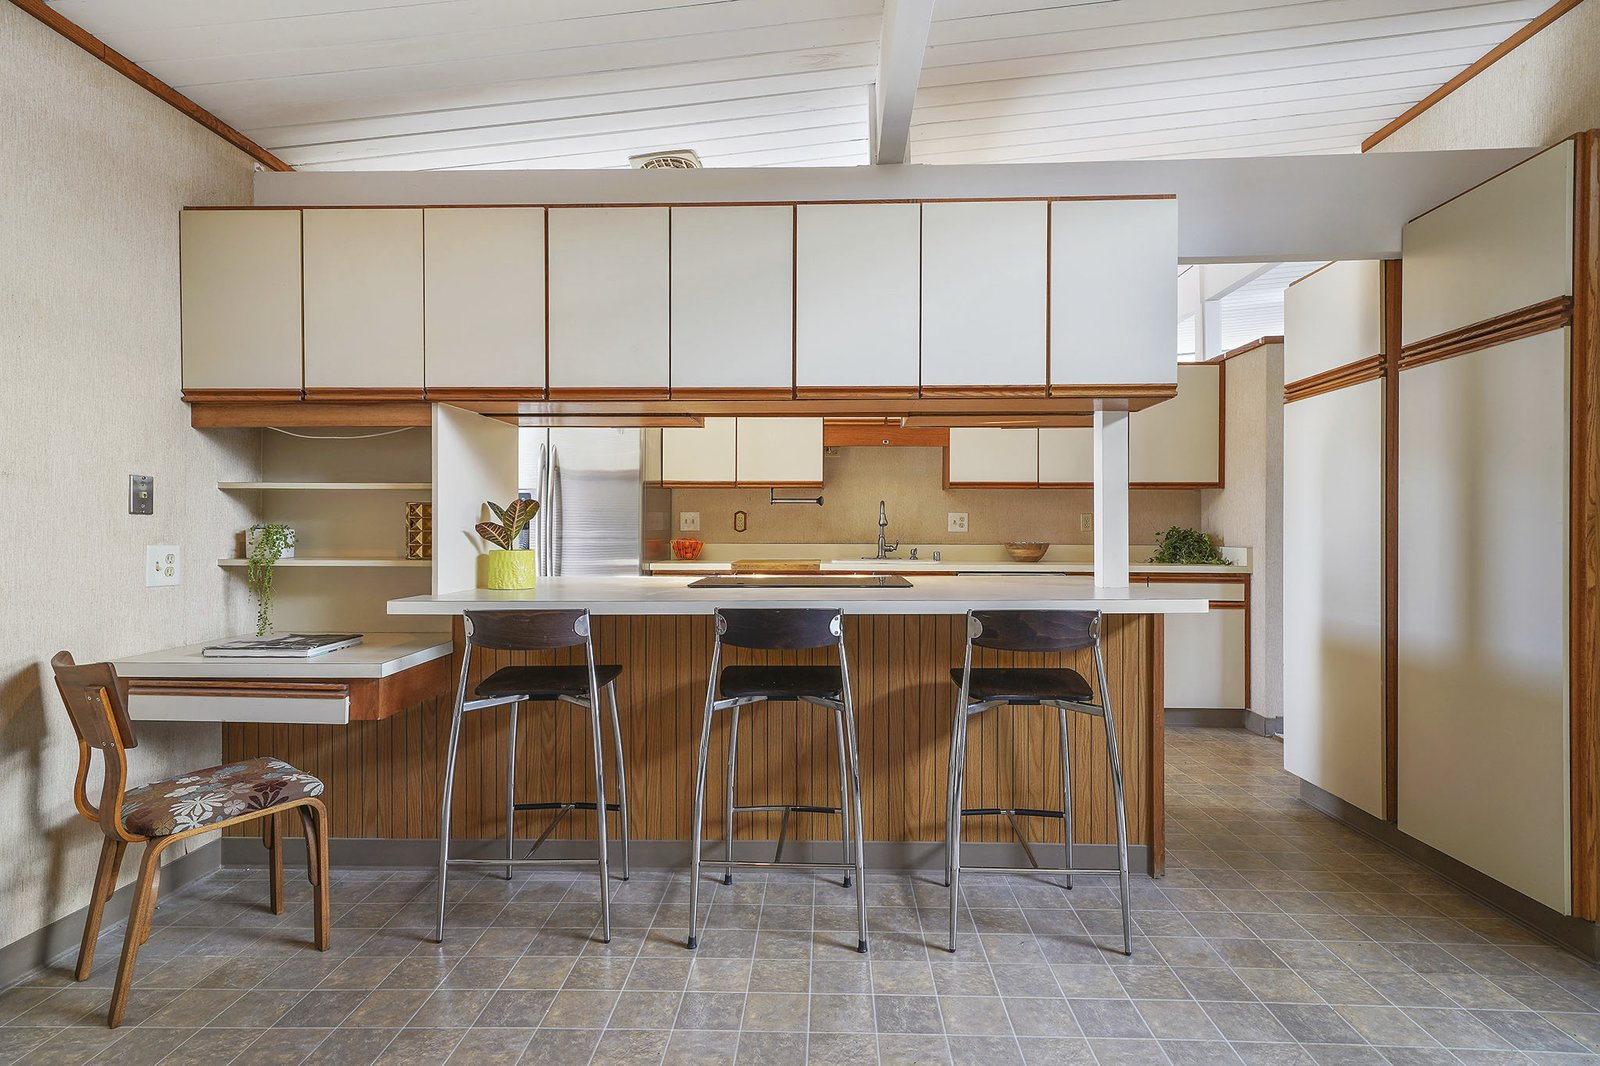 Castro Valley Eichler kitchen